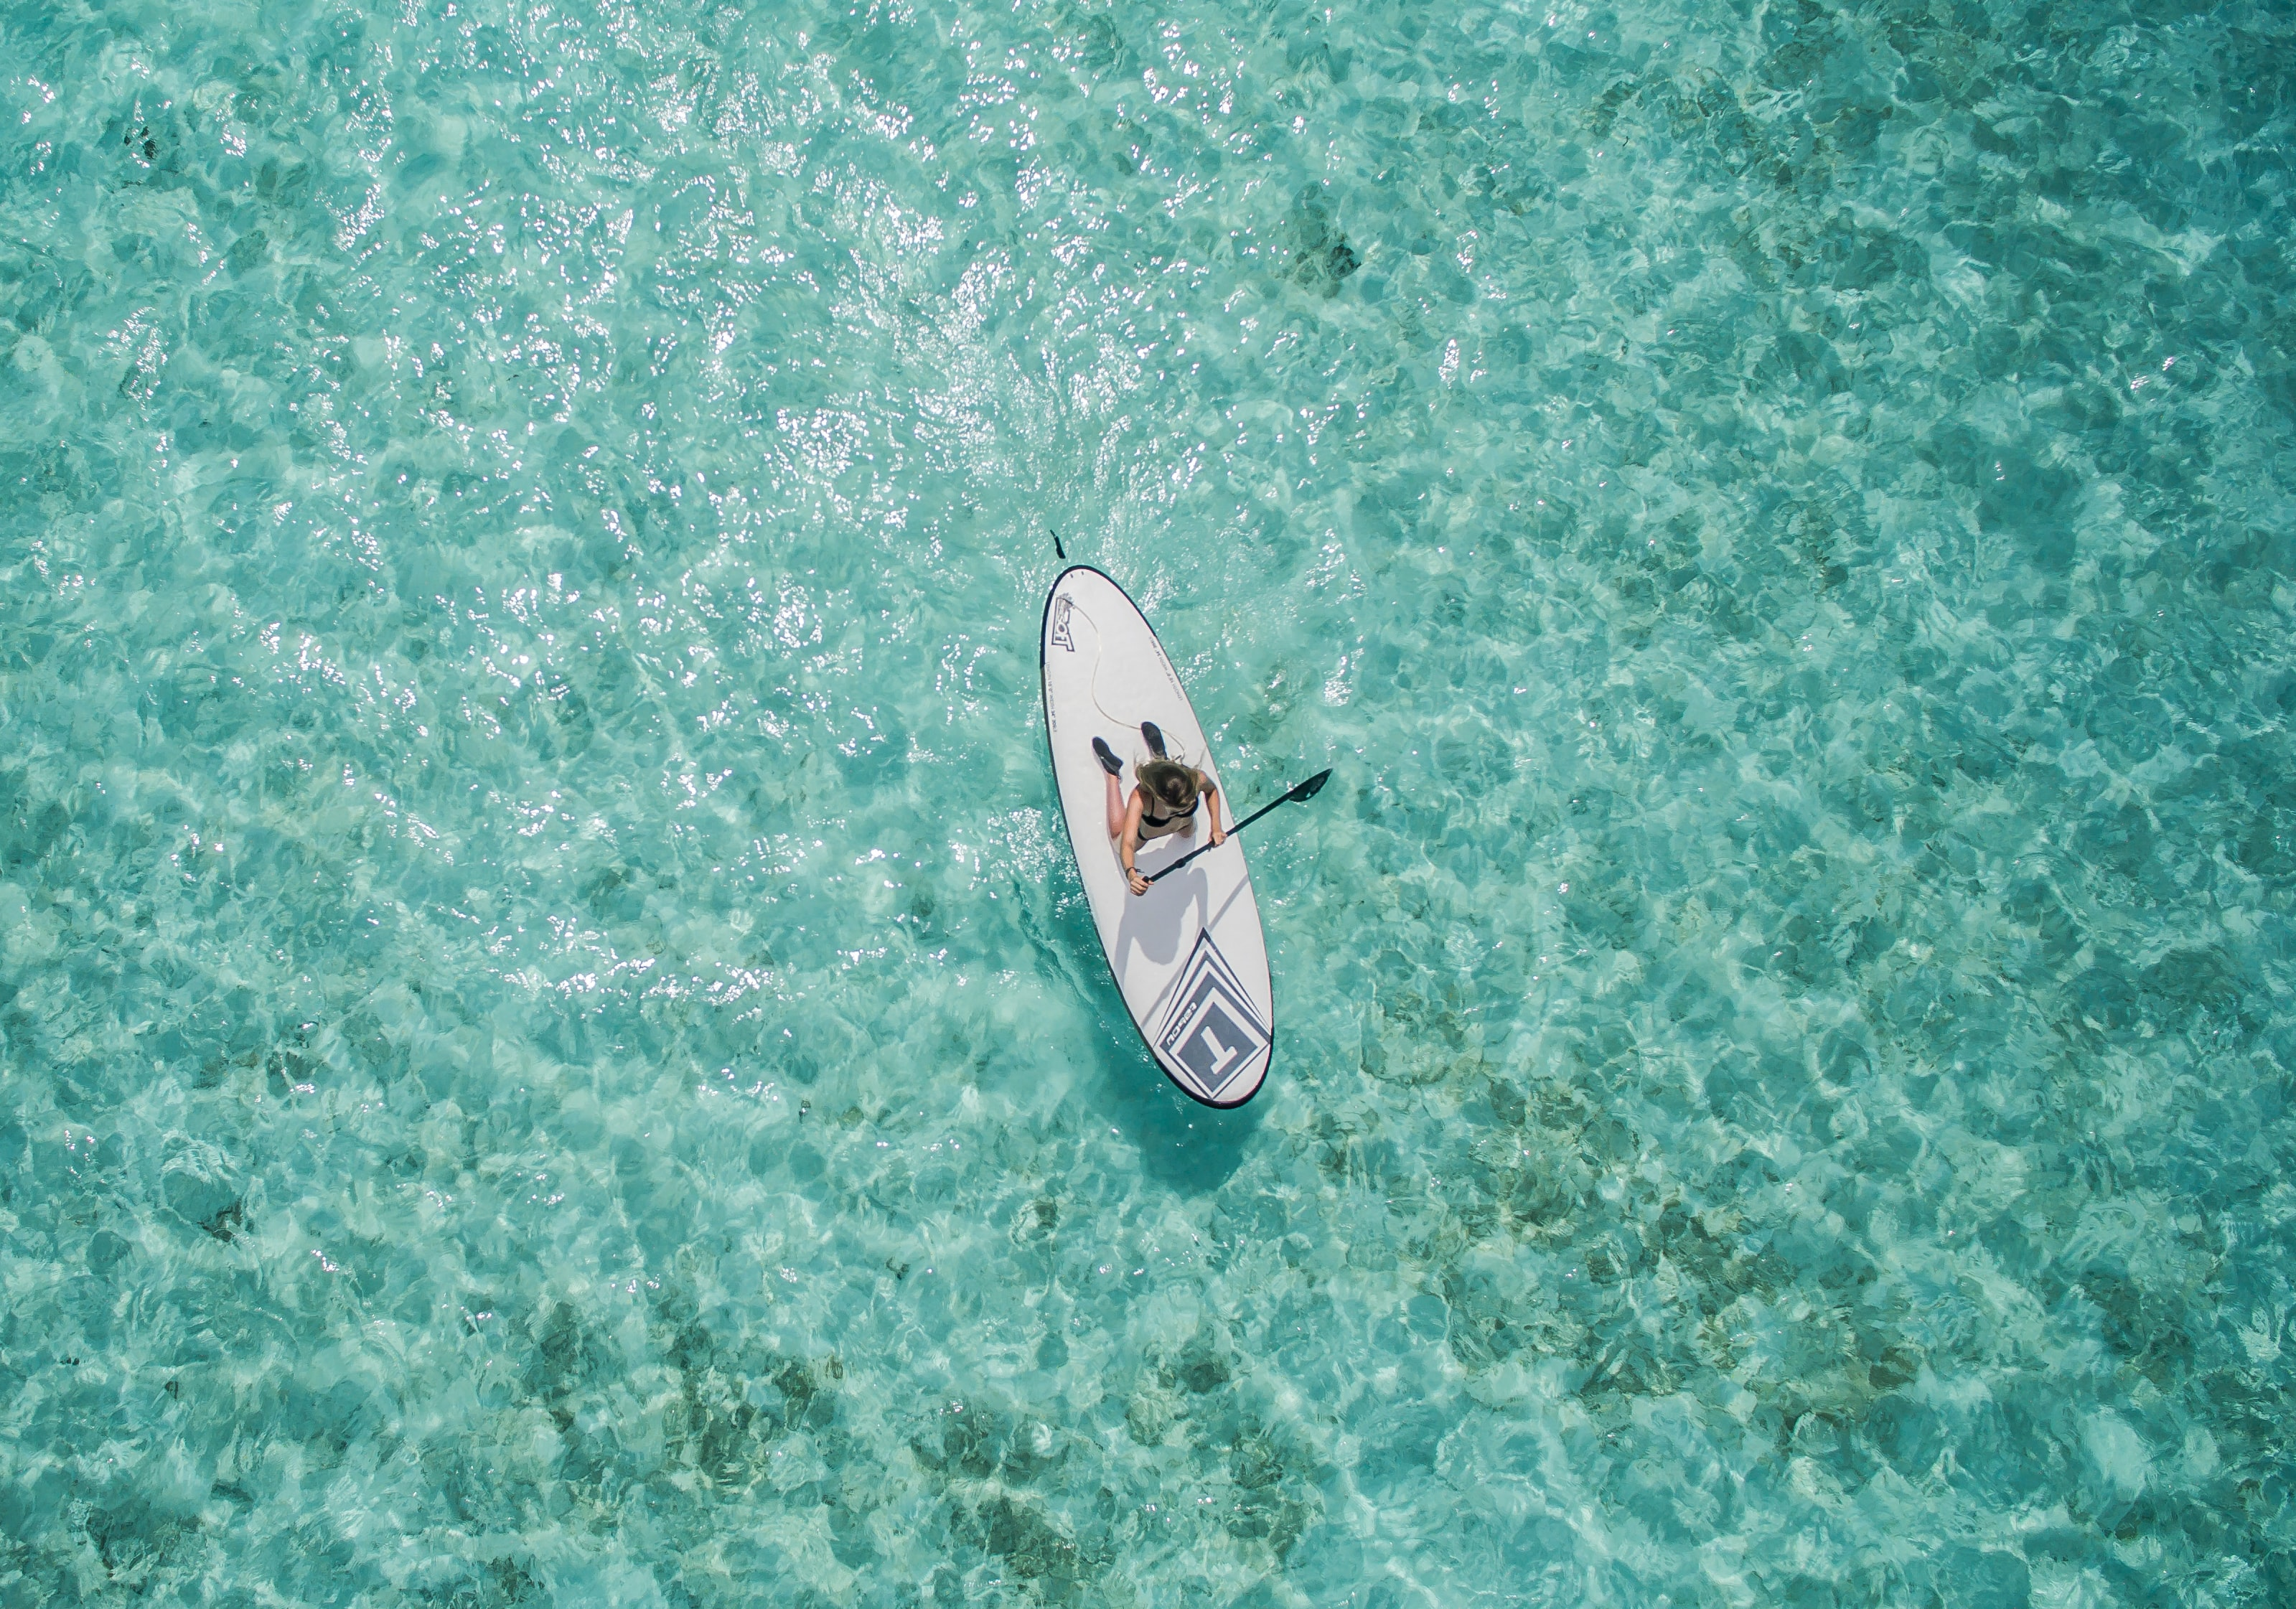 aerial photo of person using paddleboard